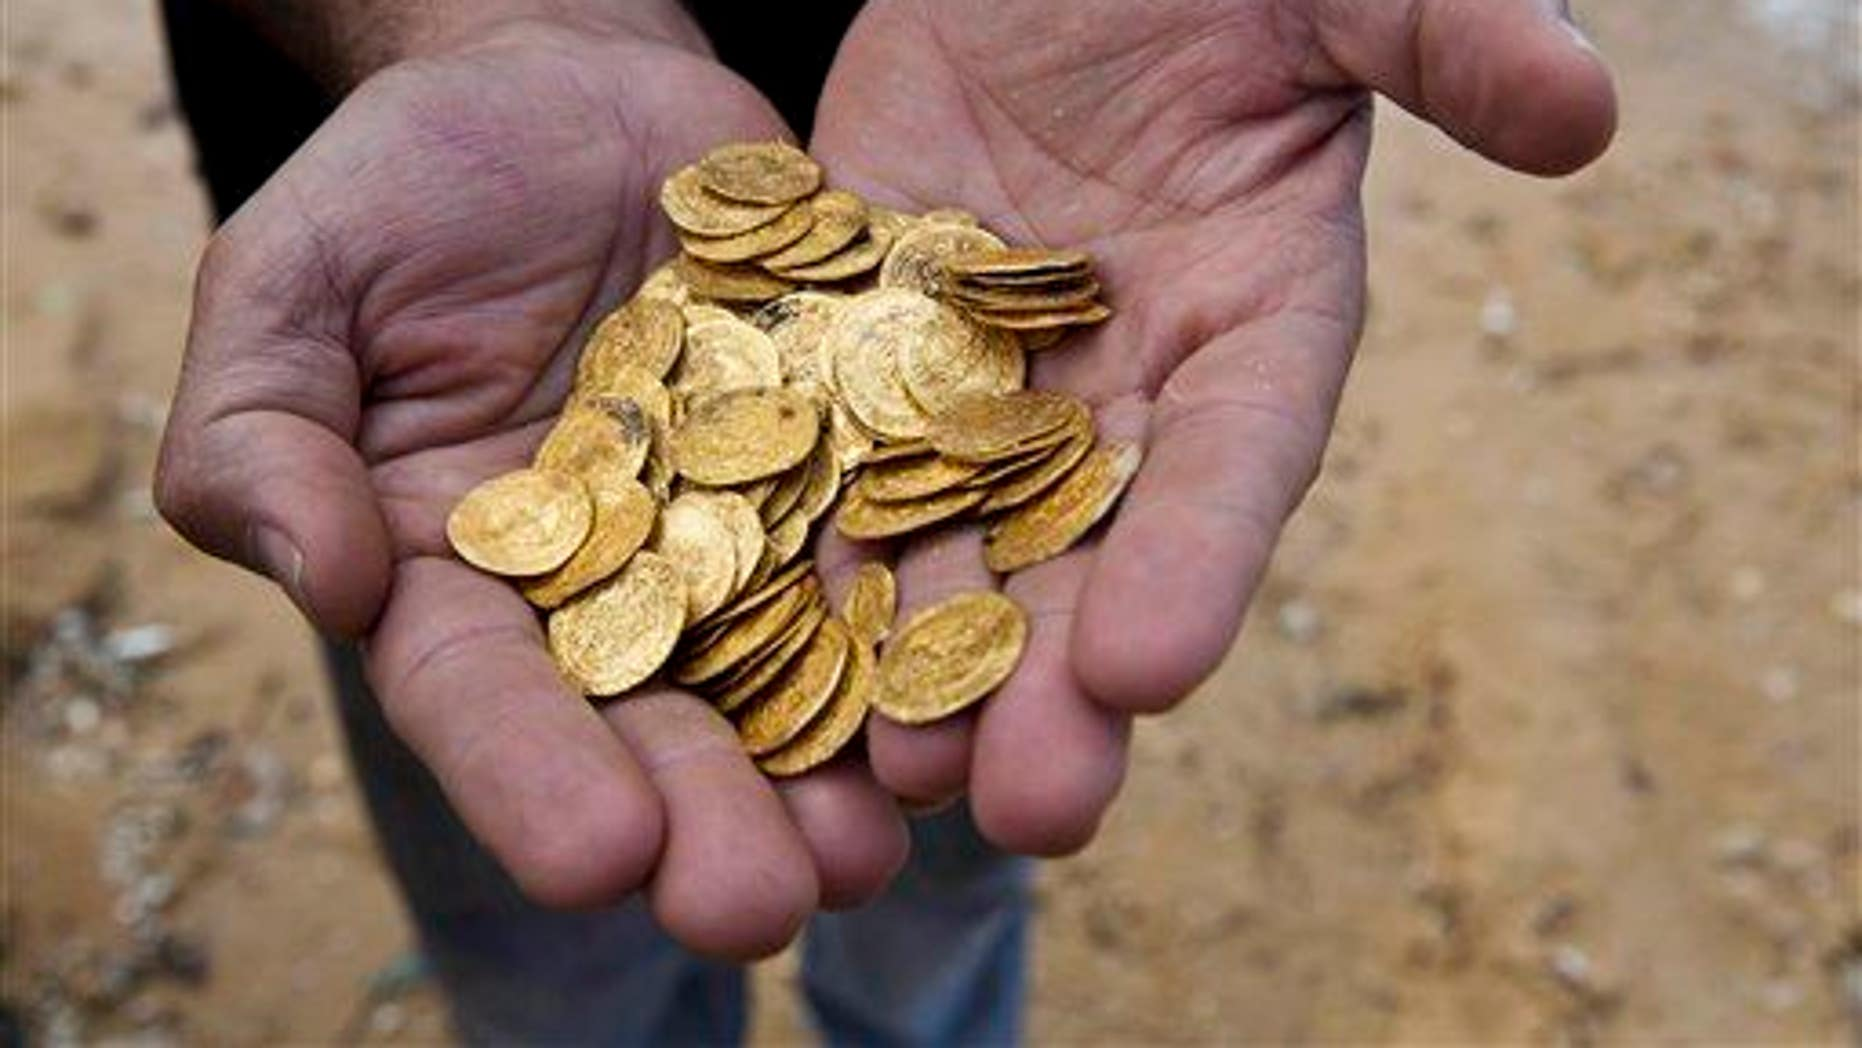 Gold coins found in the seabed in the Mediterranean Sea. The Connaught is thought to have quite a stash of its own.